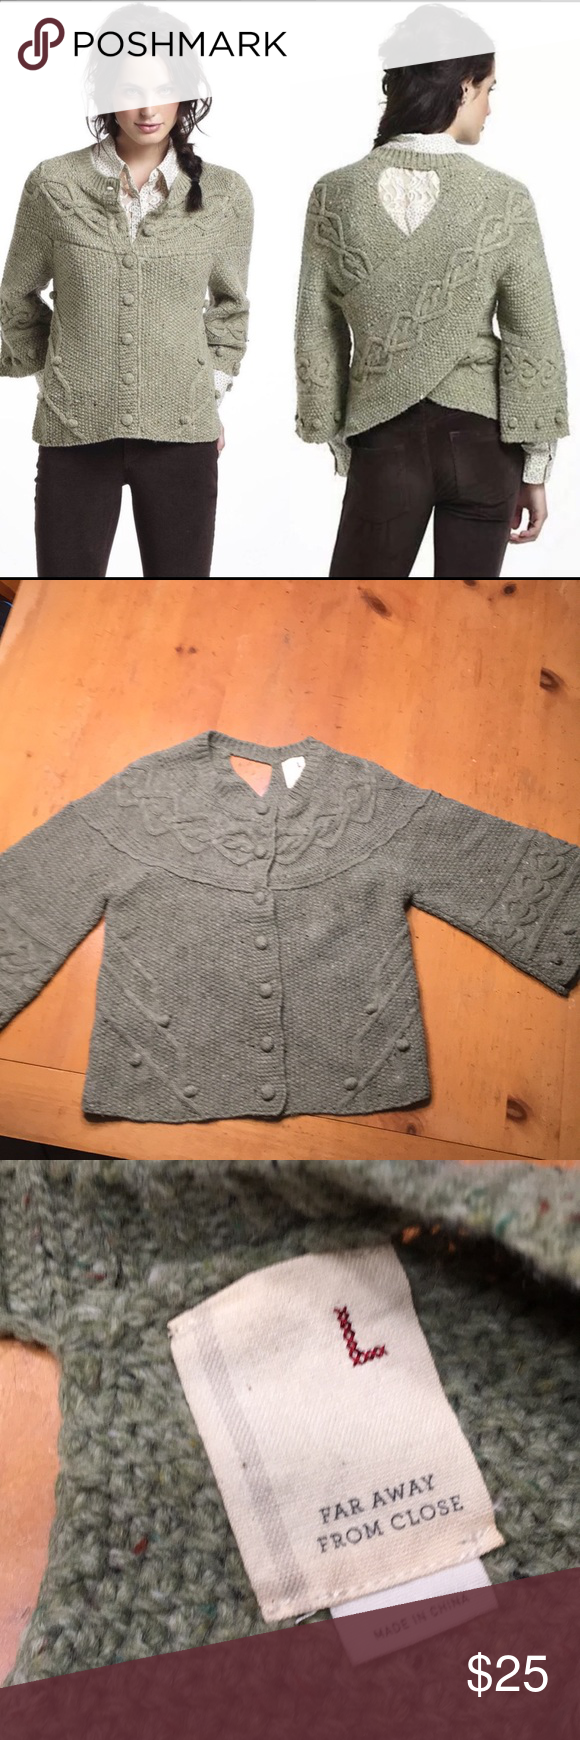 Anthropologie Far Away From Close Cardigan Sweater in 2020